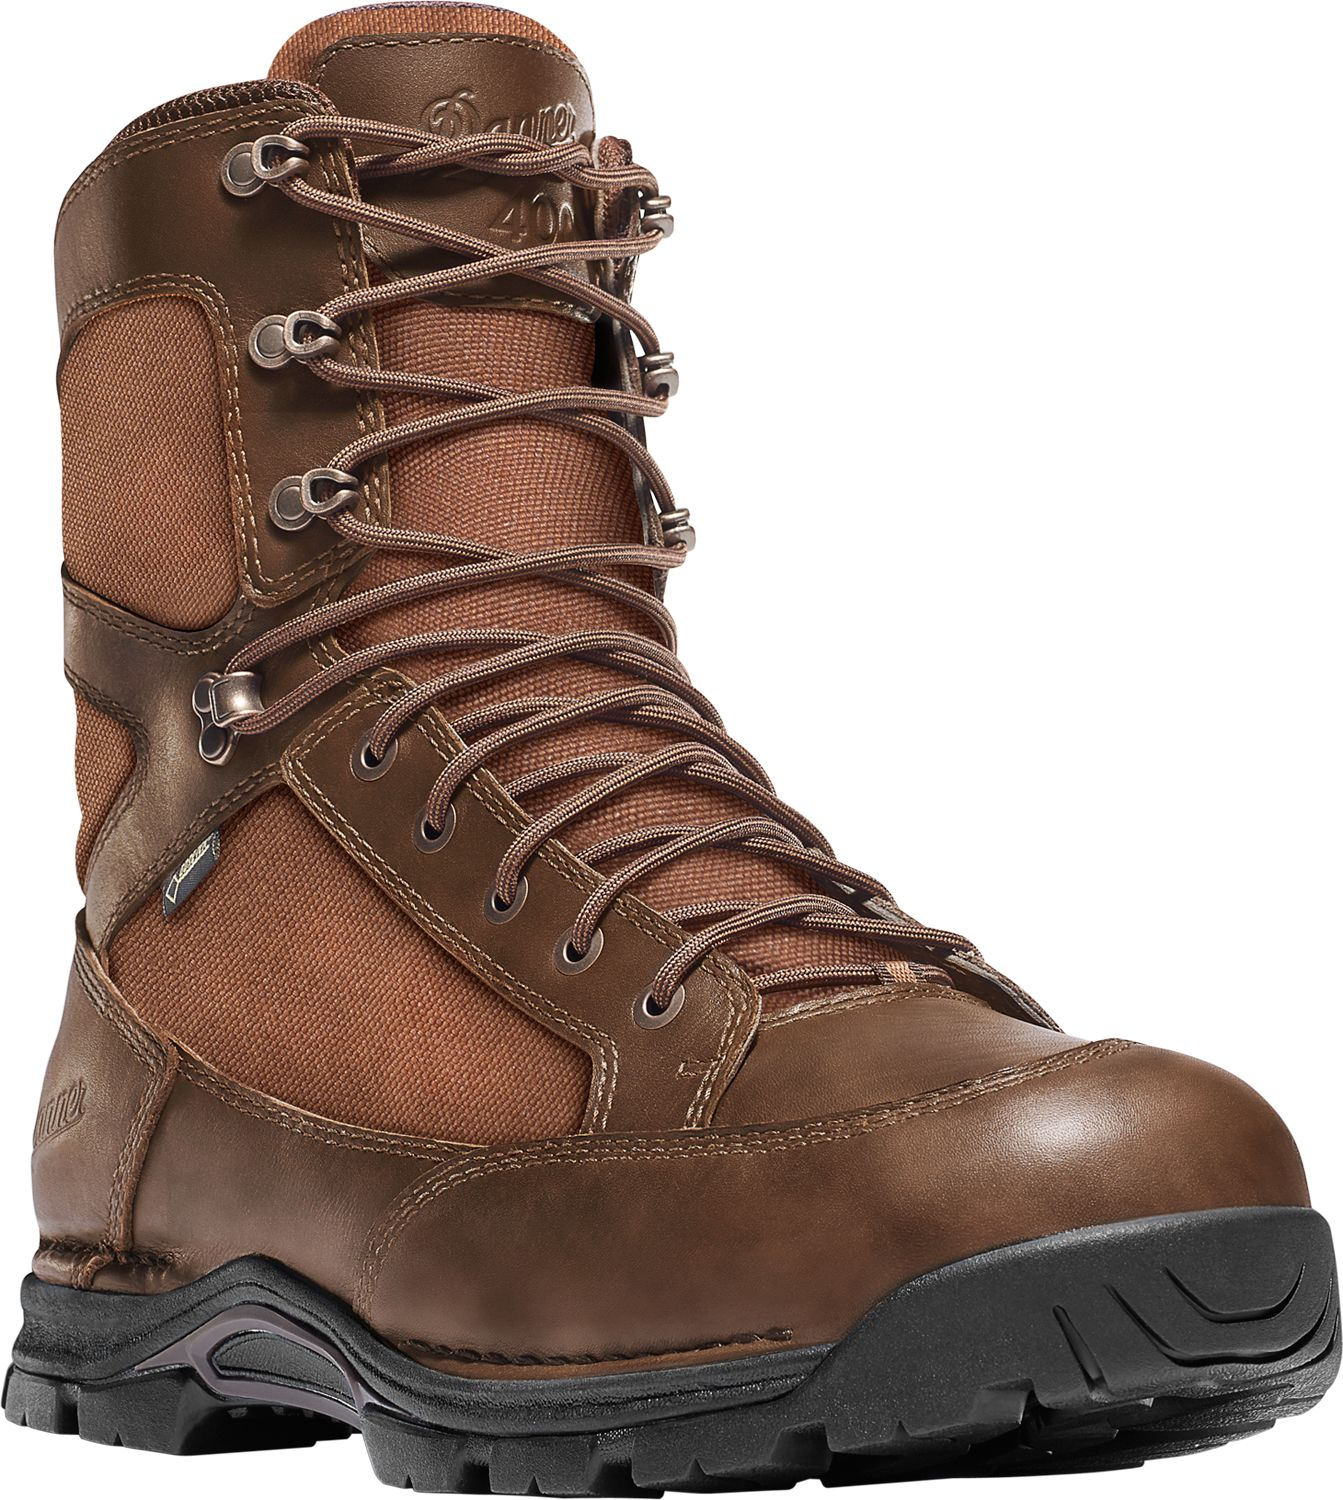 "Danner Men's Pronghorn 8"" GORE-TEX Hunting Boots